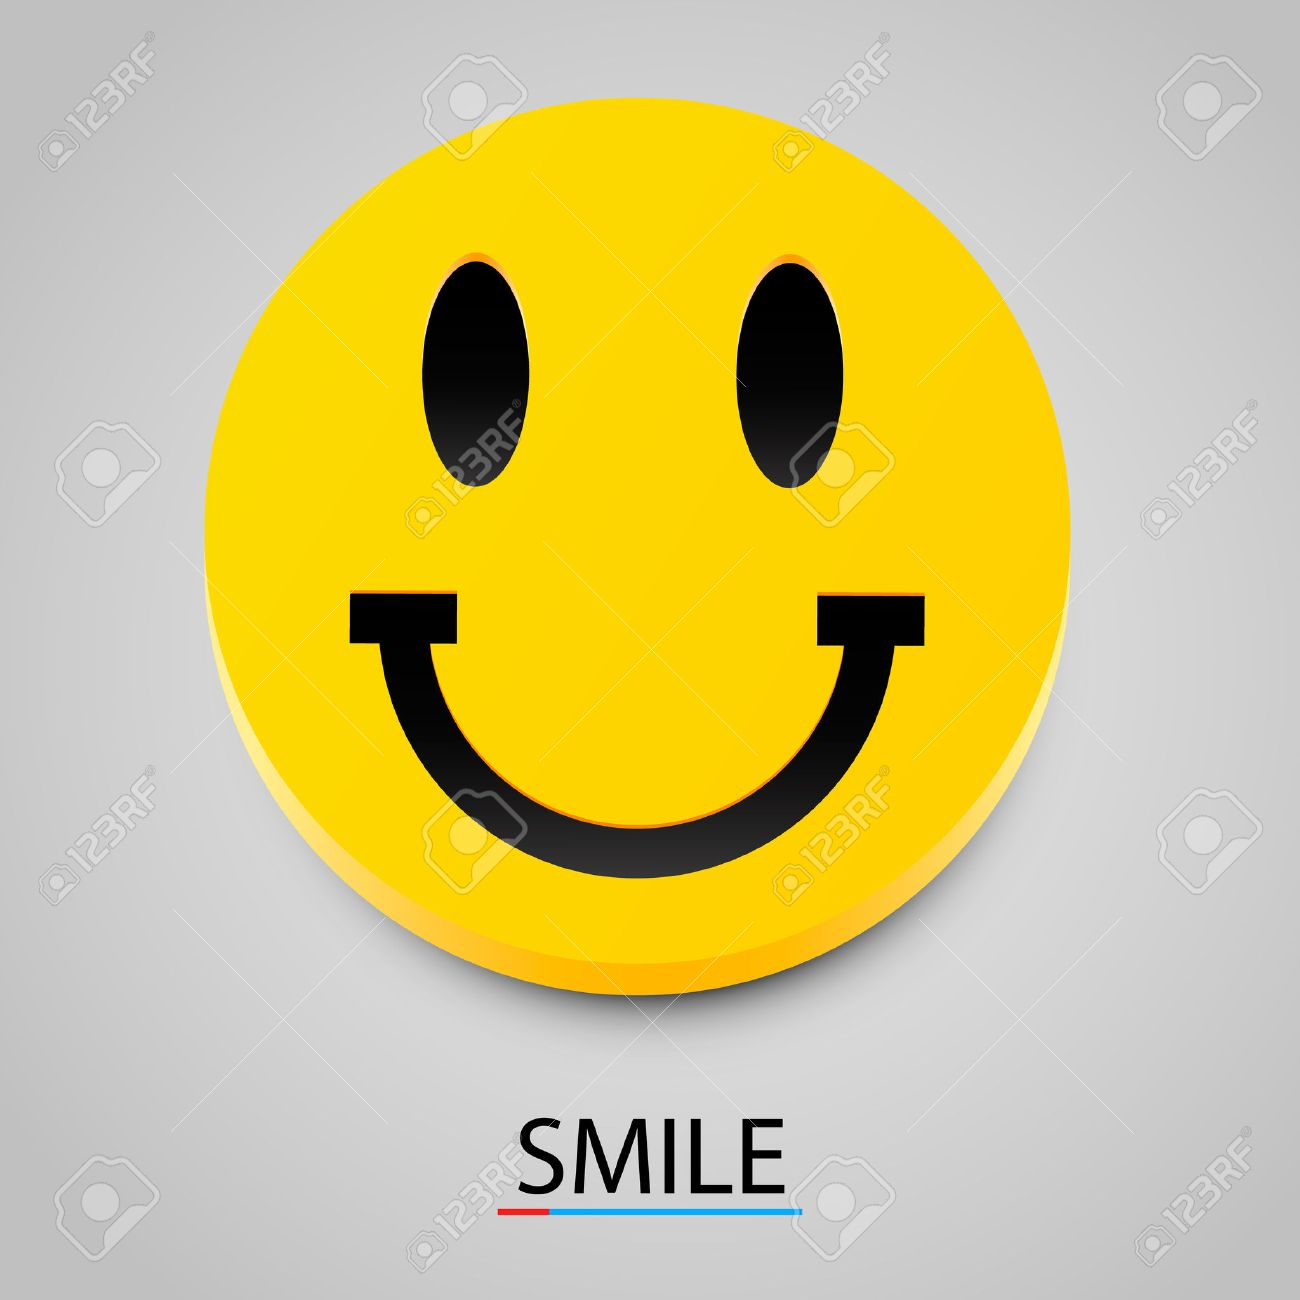 Modern yellow laughing happy smile. Vector illustration - 46955349